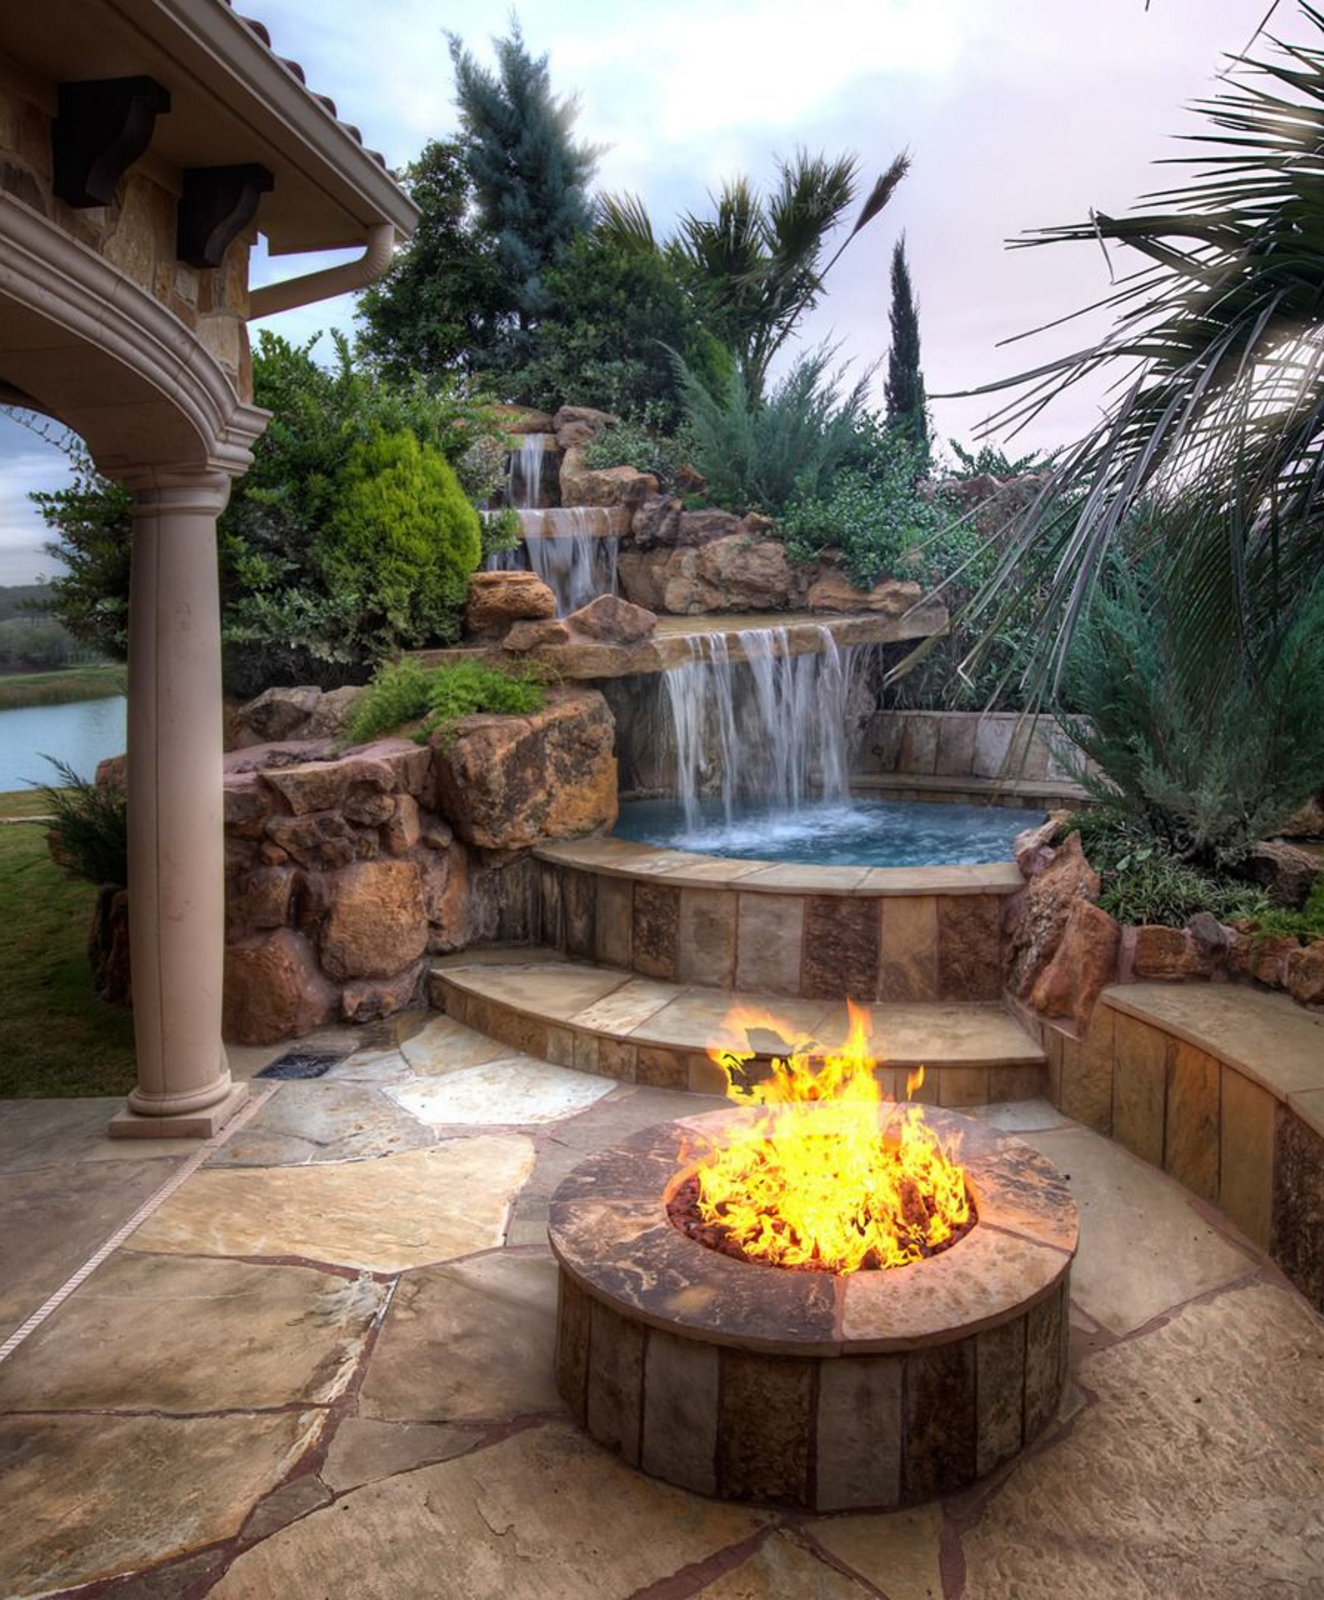 Want a vacation destination in your own backyard? The beauty of nature's creations is captured in the custom natural rock pools, spas, and waterfalls of Stone Mason of Spring. #hottubdeck